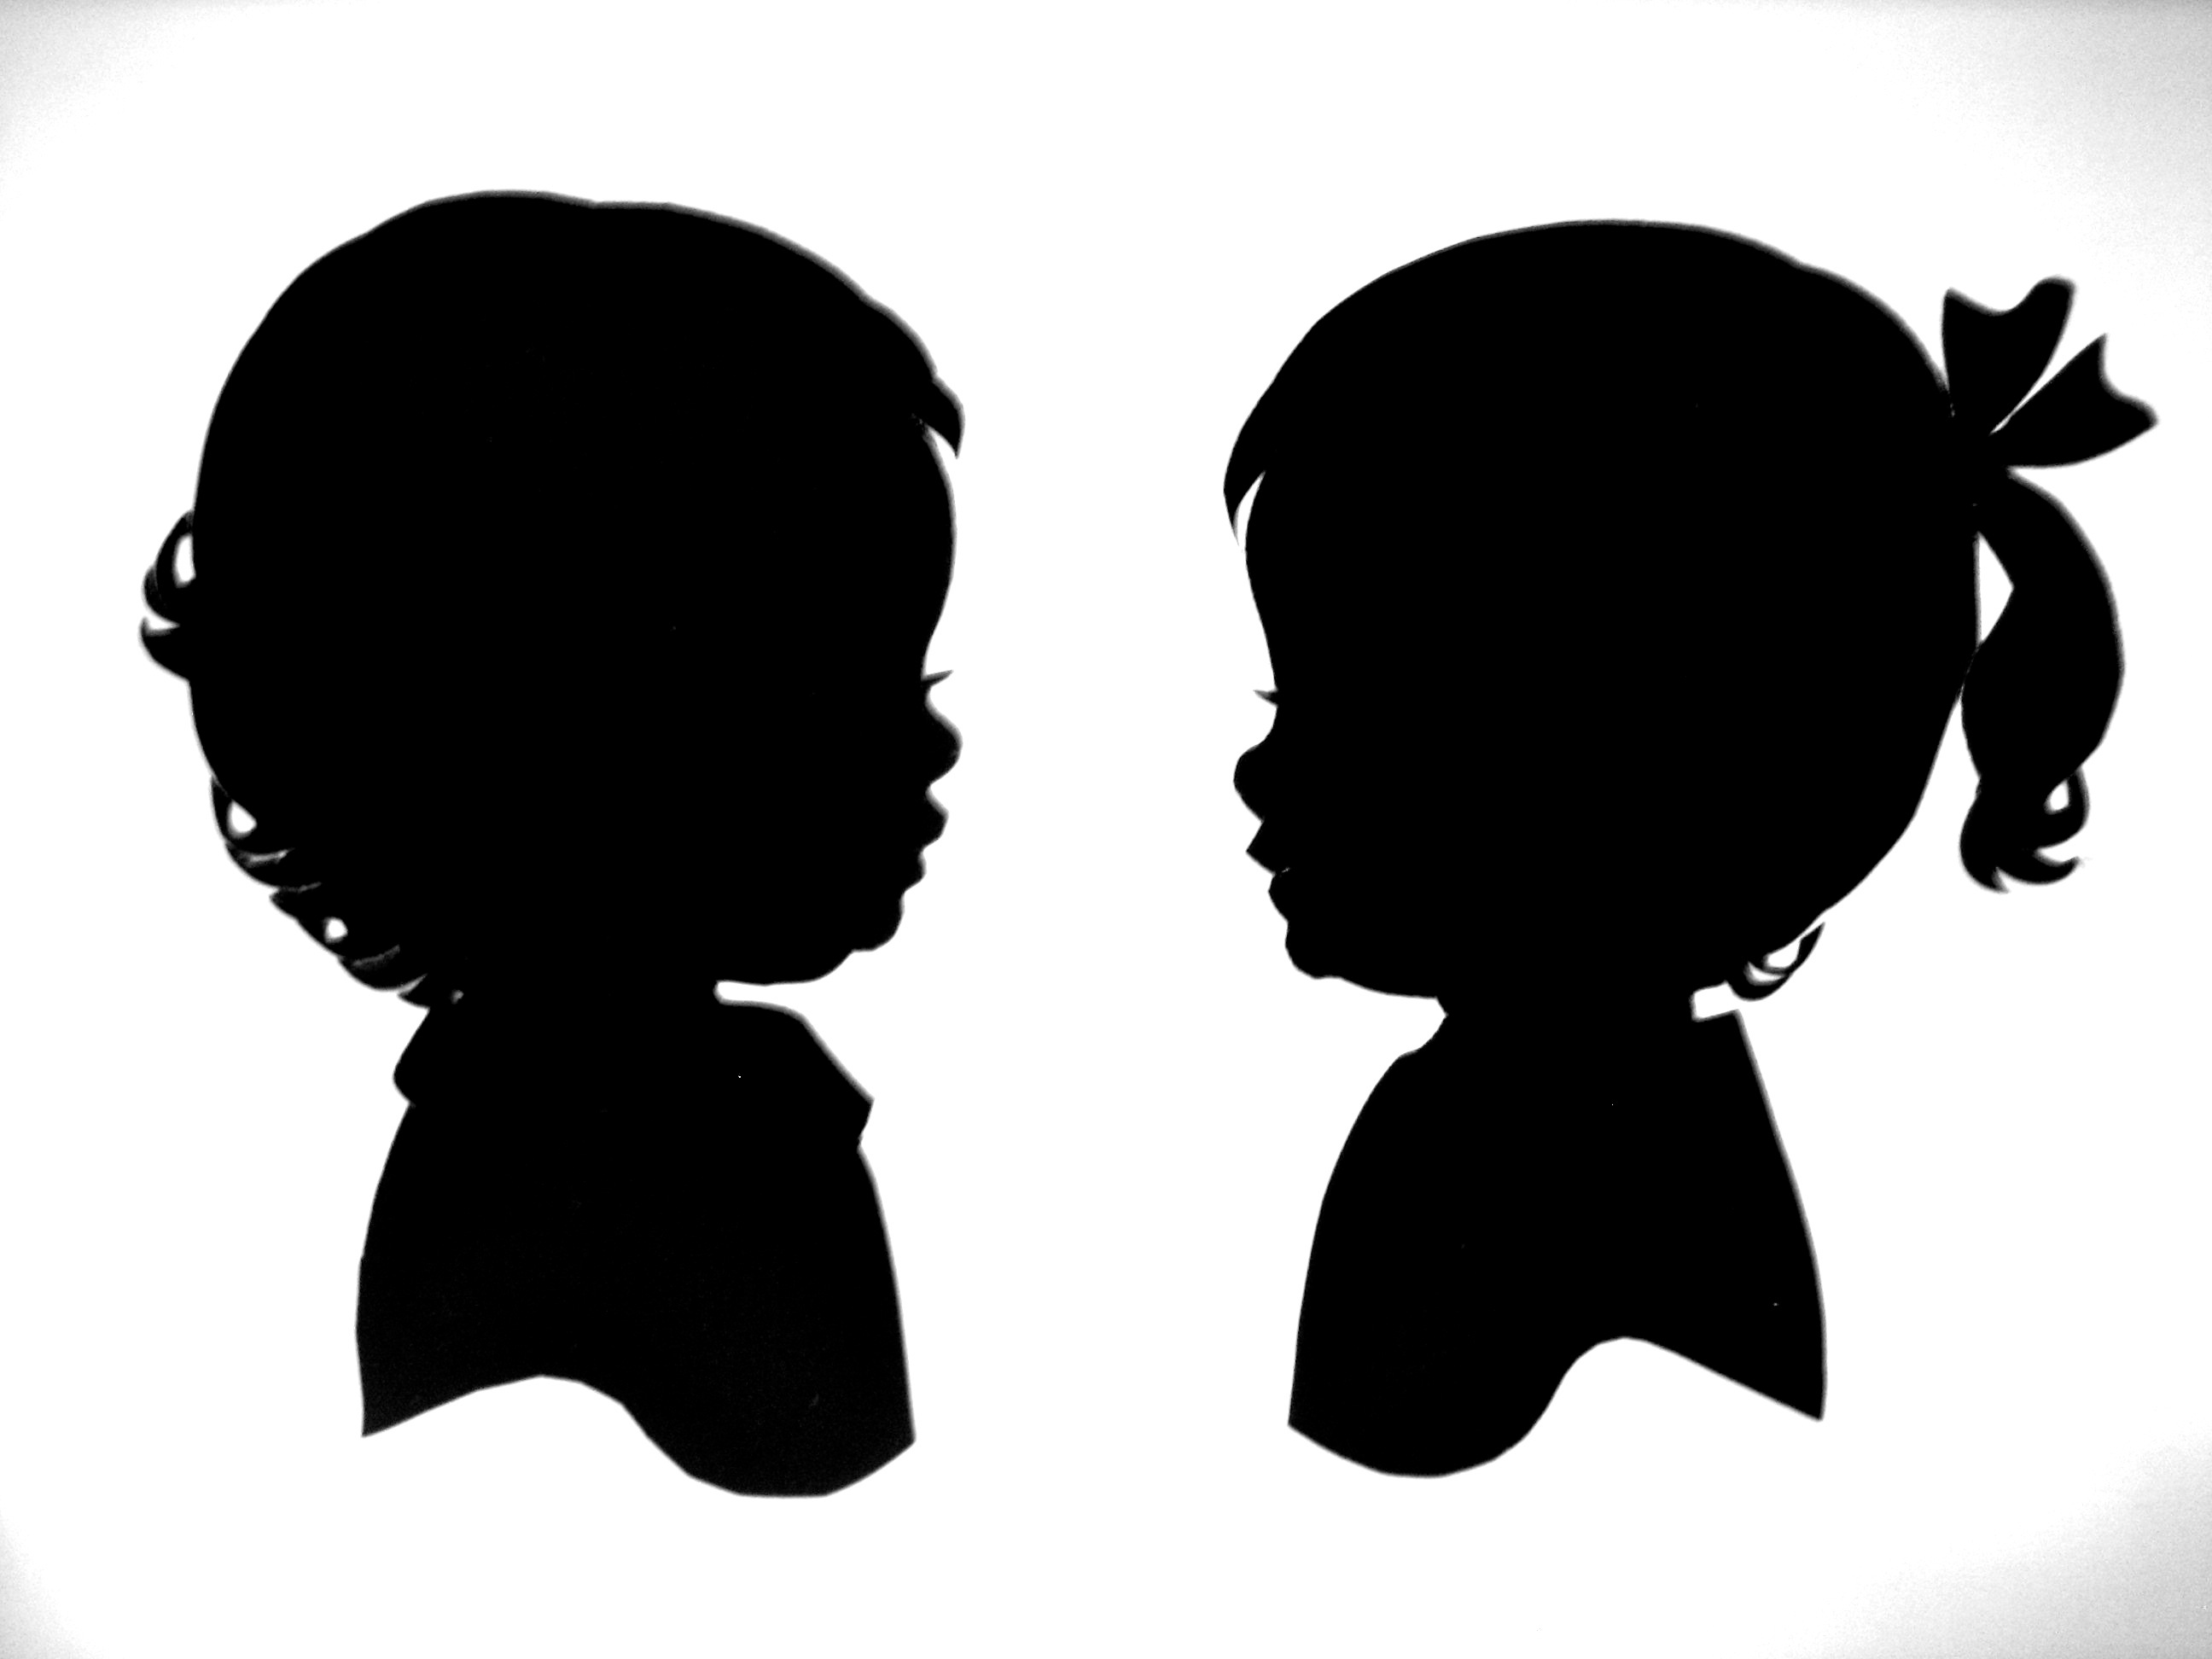 Child clipart silhouette vector transparent stock Free Baby Silhouette, Download Free Clip Art, Free Clip Art on ... vector transparent stock